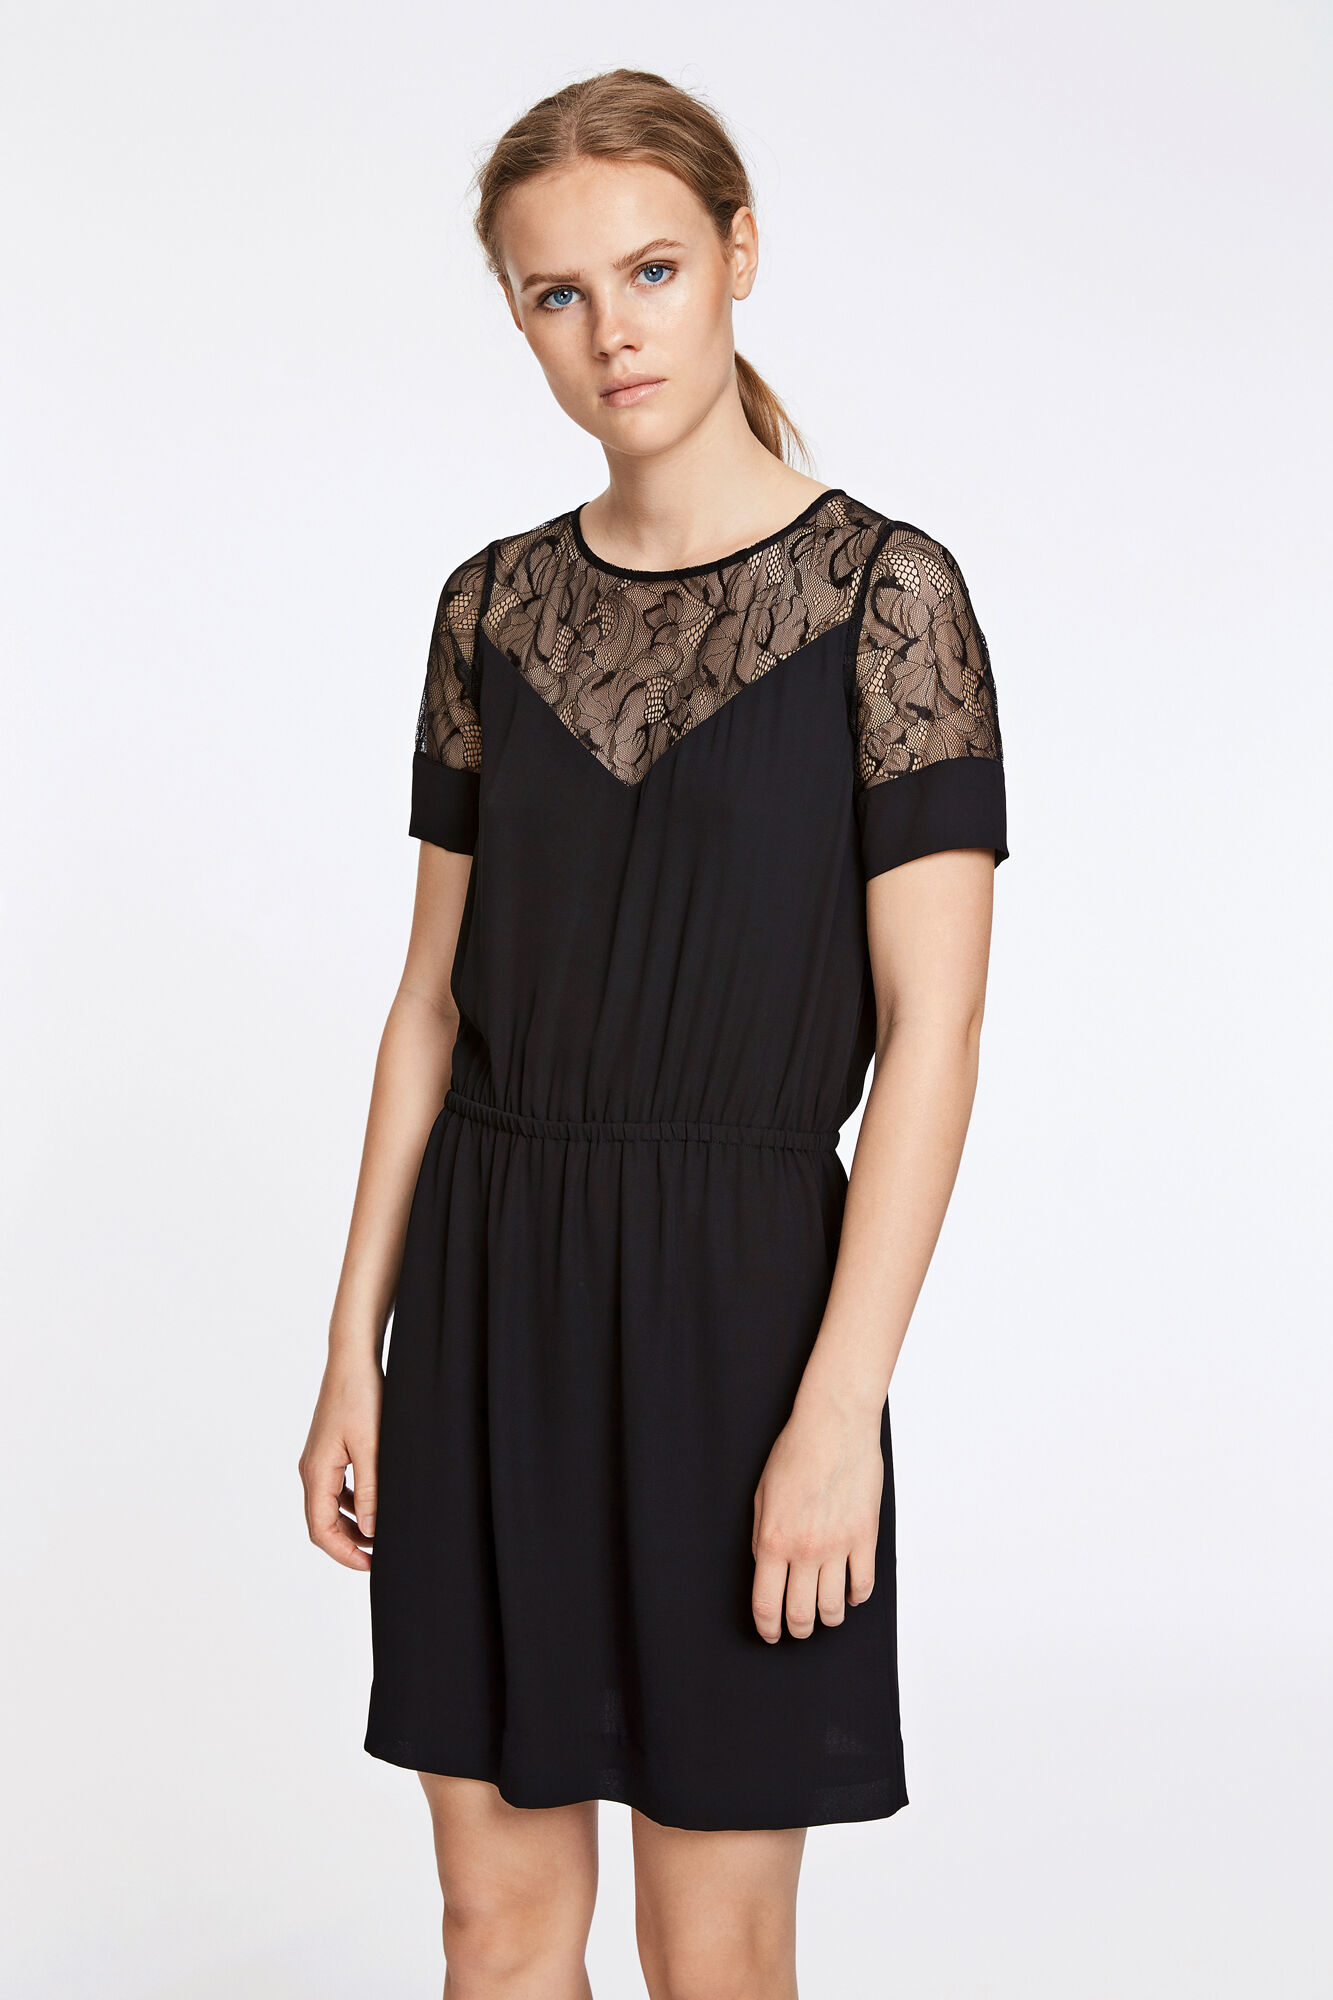 Biaf lace ss dress 6891, BLACK